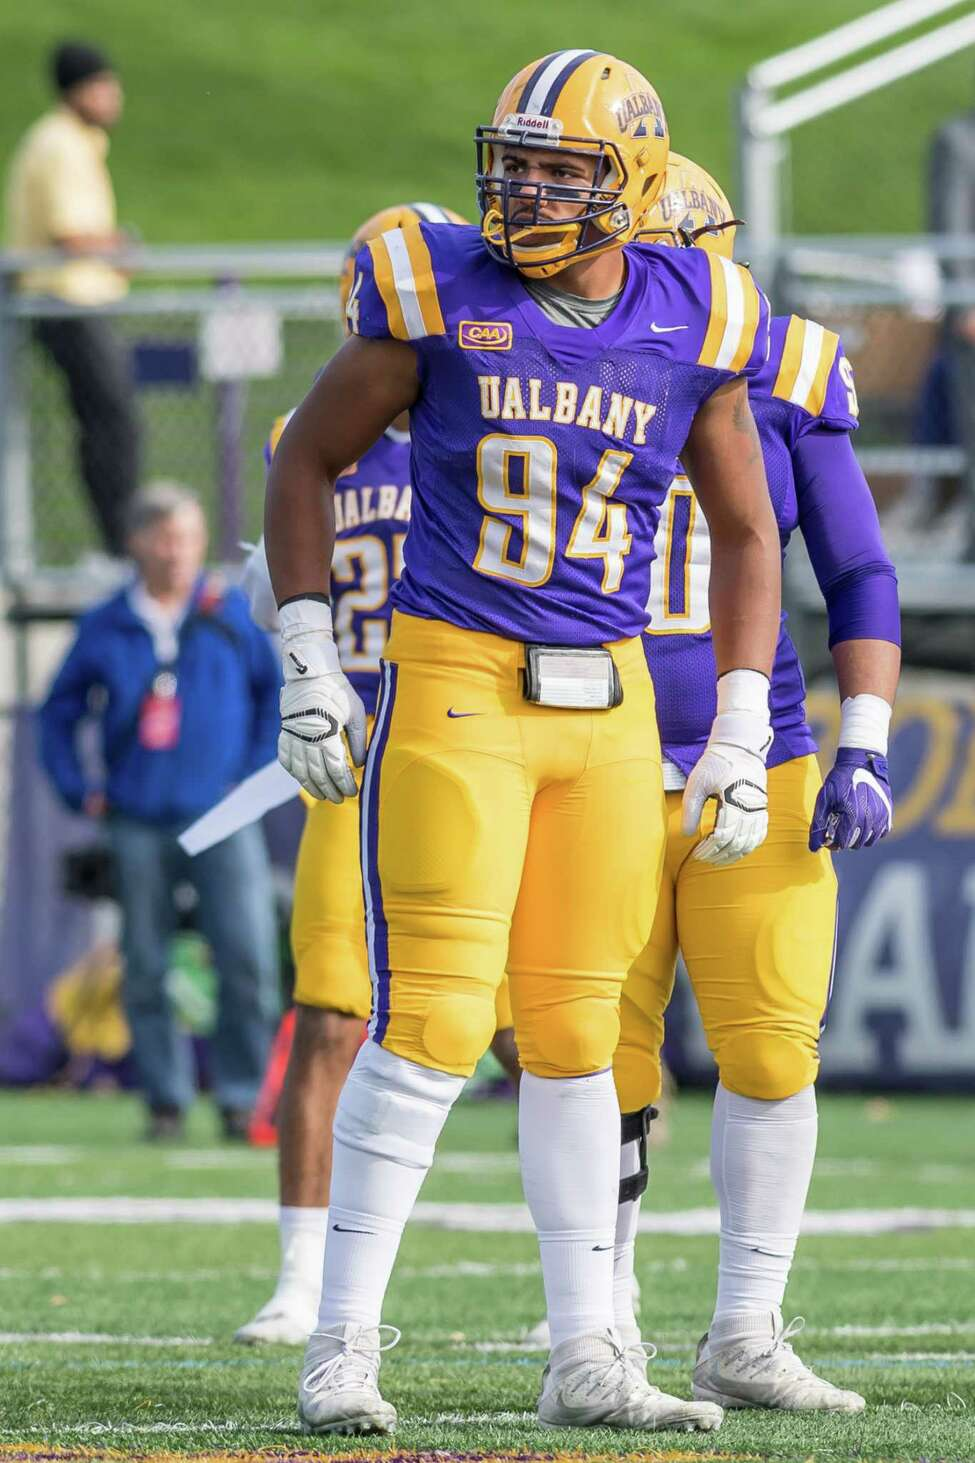 UAlbany senior defensive end Nick Griffin. (Bill Ziskin / UAlbany Athletics)